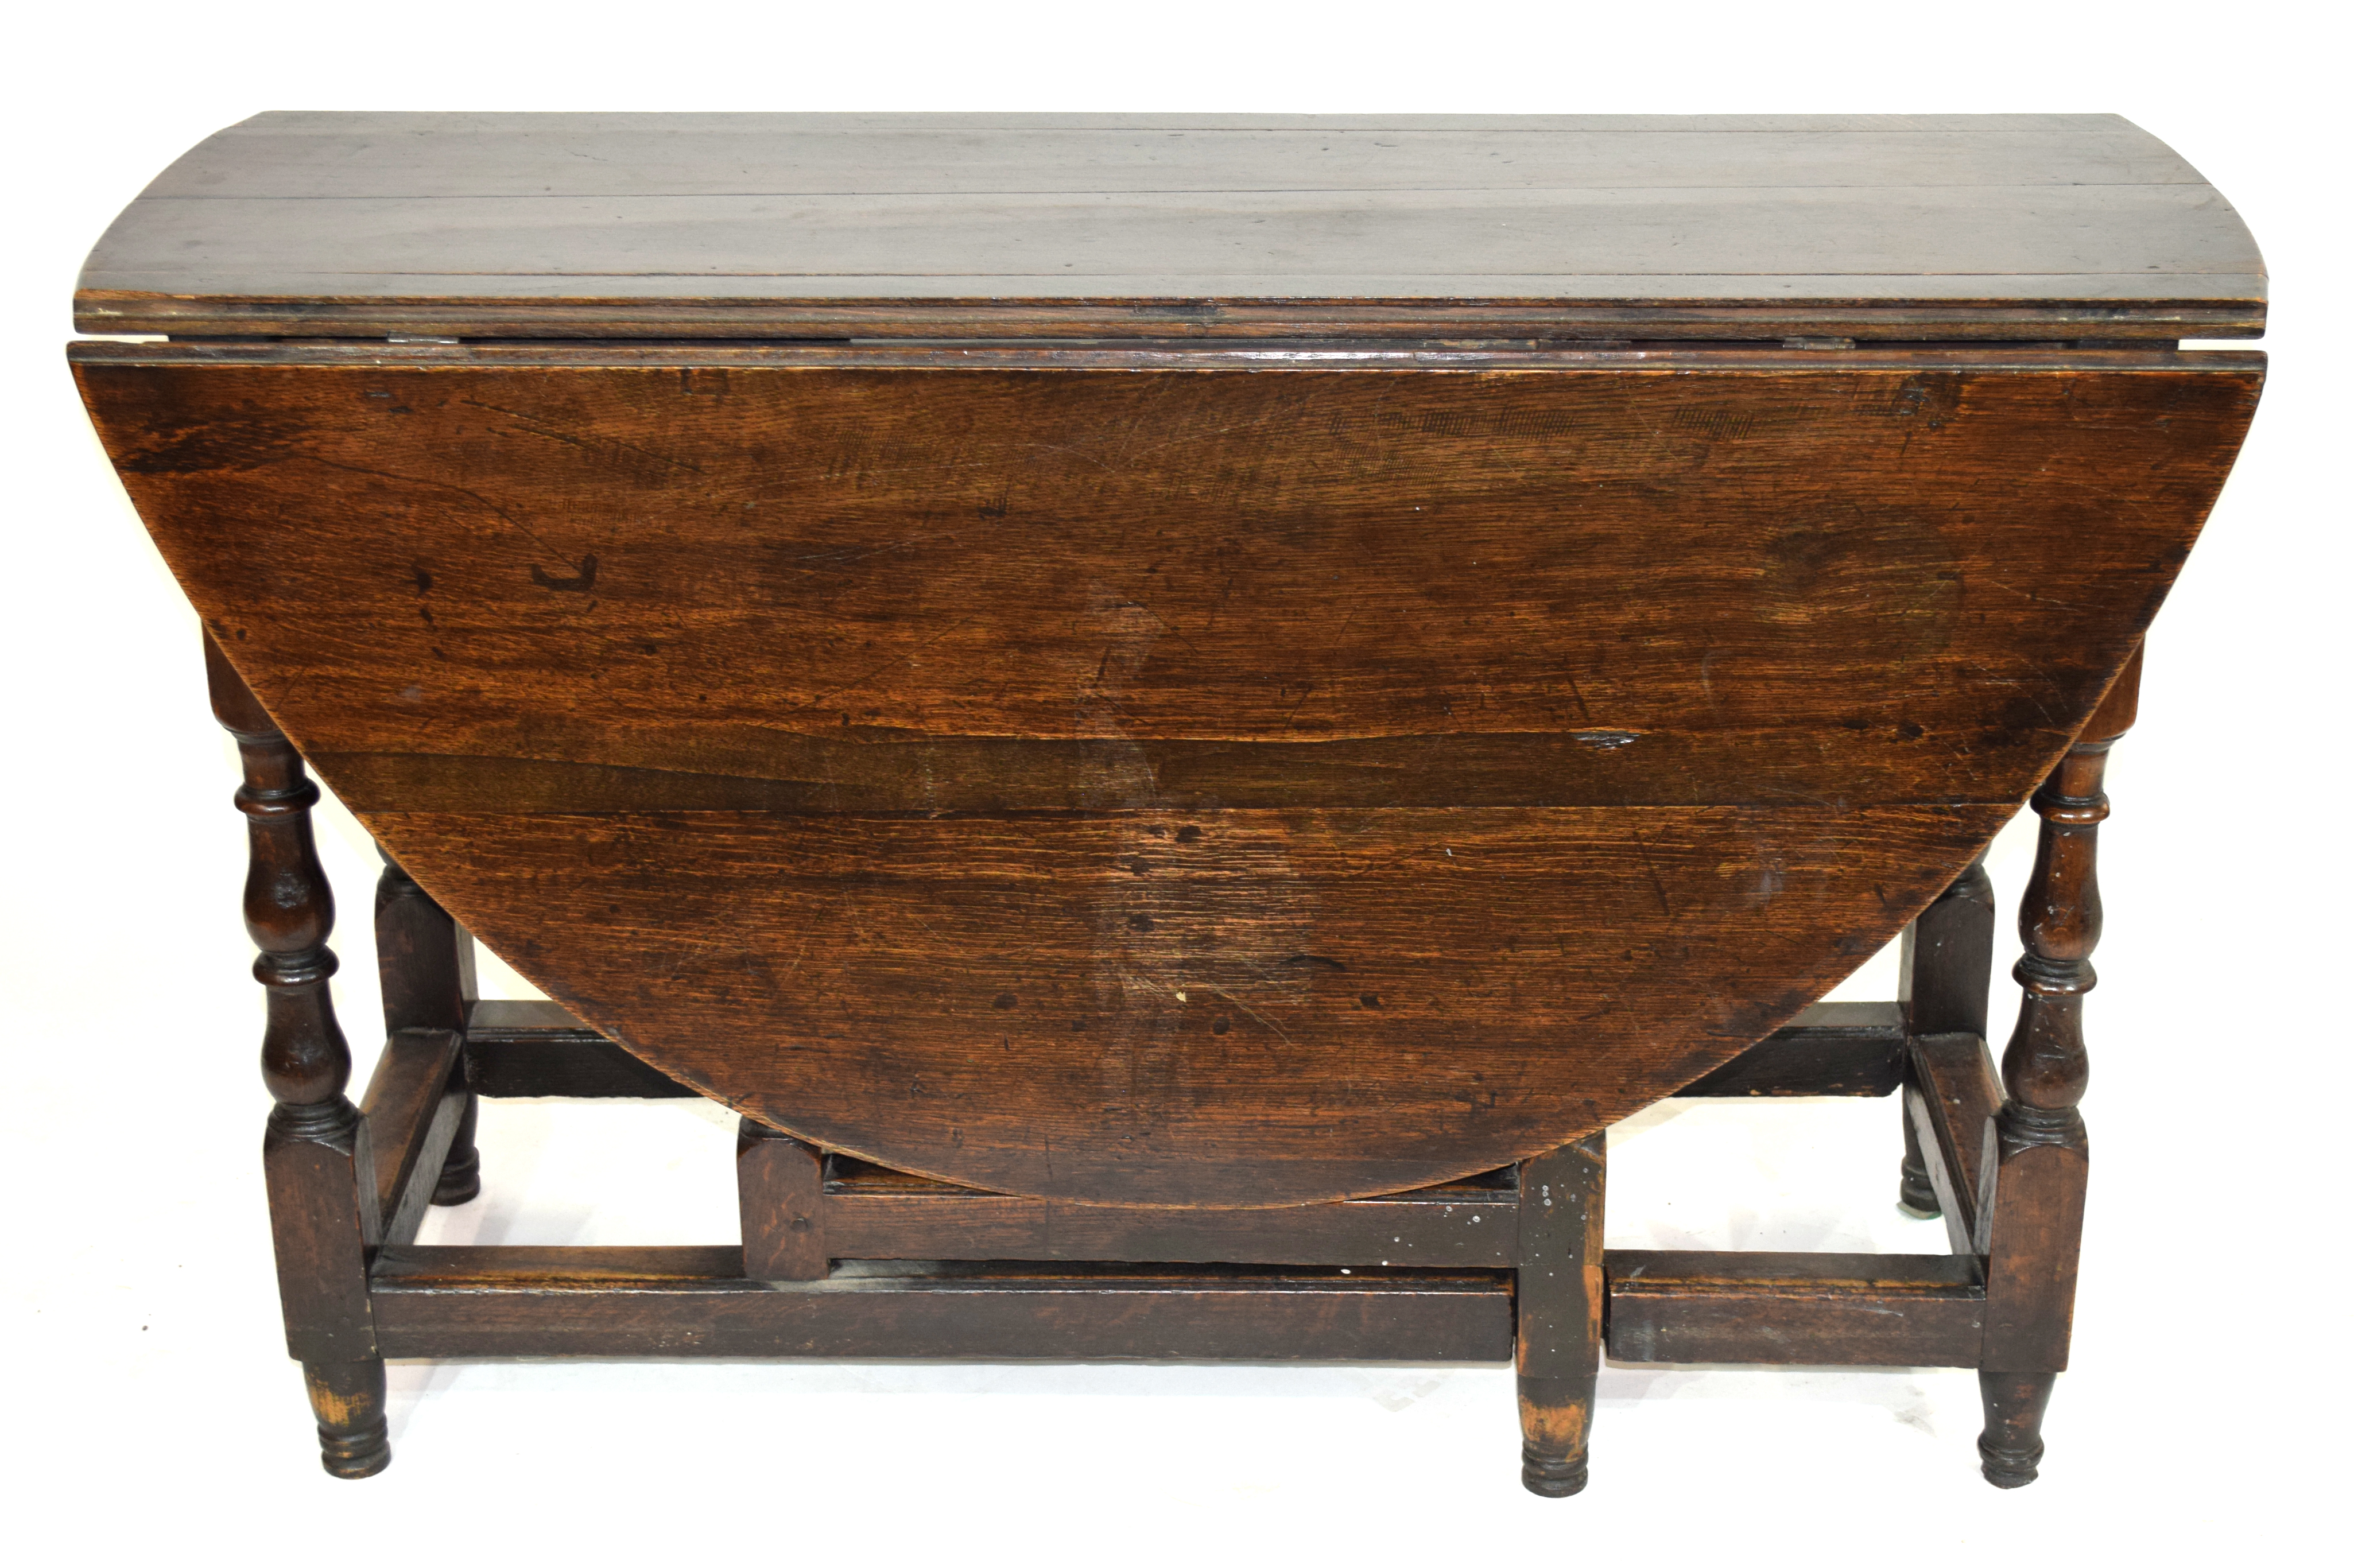 18th century oval oak gateleg table raised on turned legs, 120cm wide Condition: Overall surface